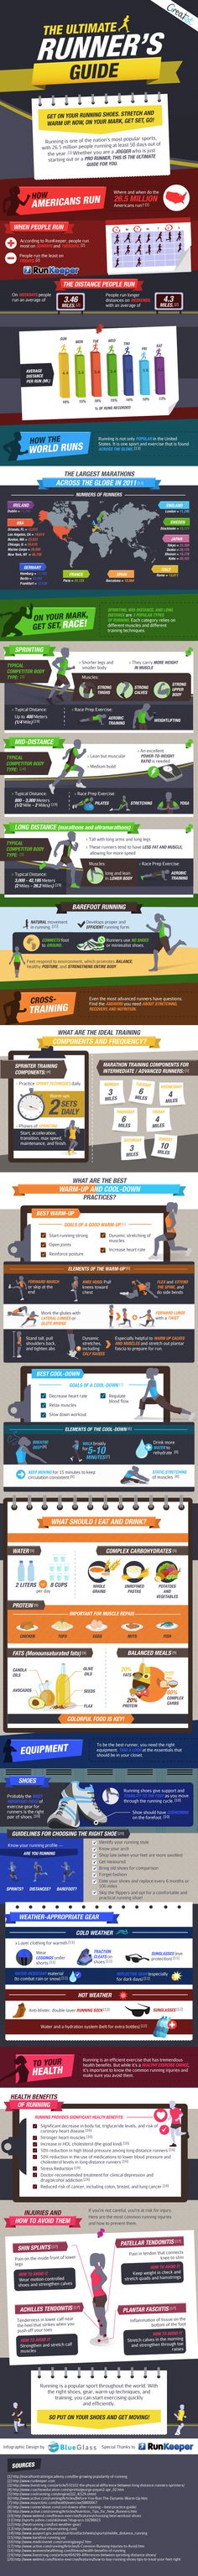 The Ultimate #Runners Guide #Infographic